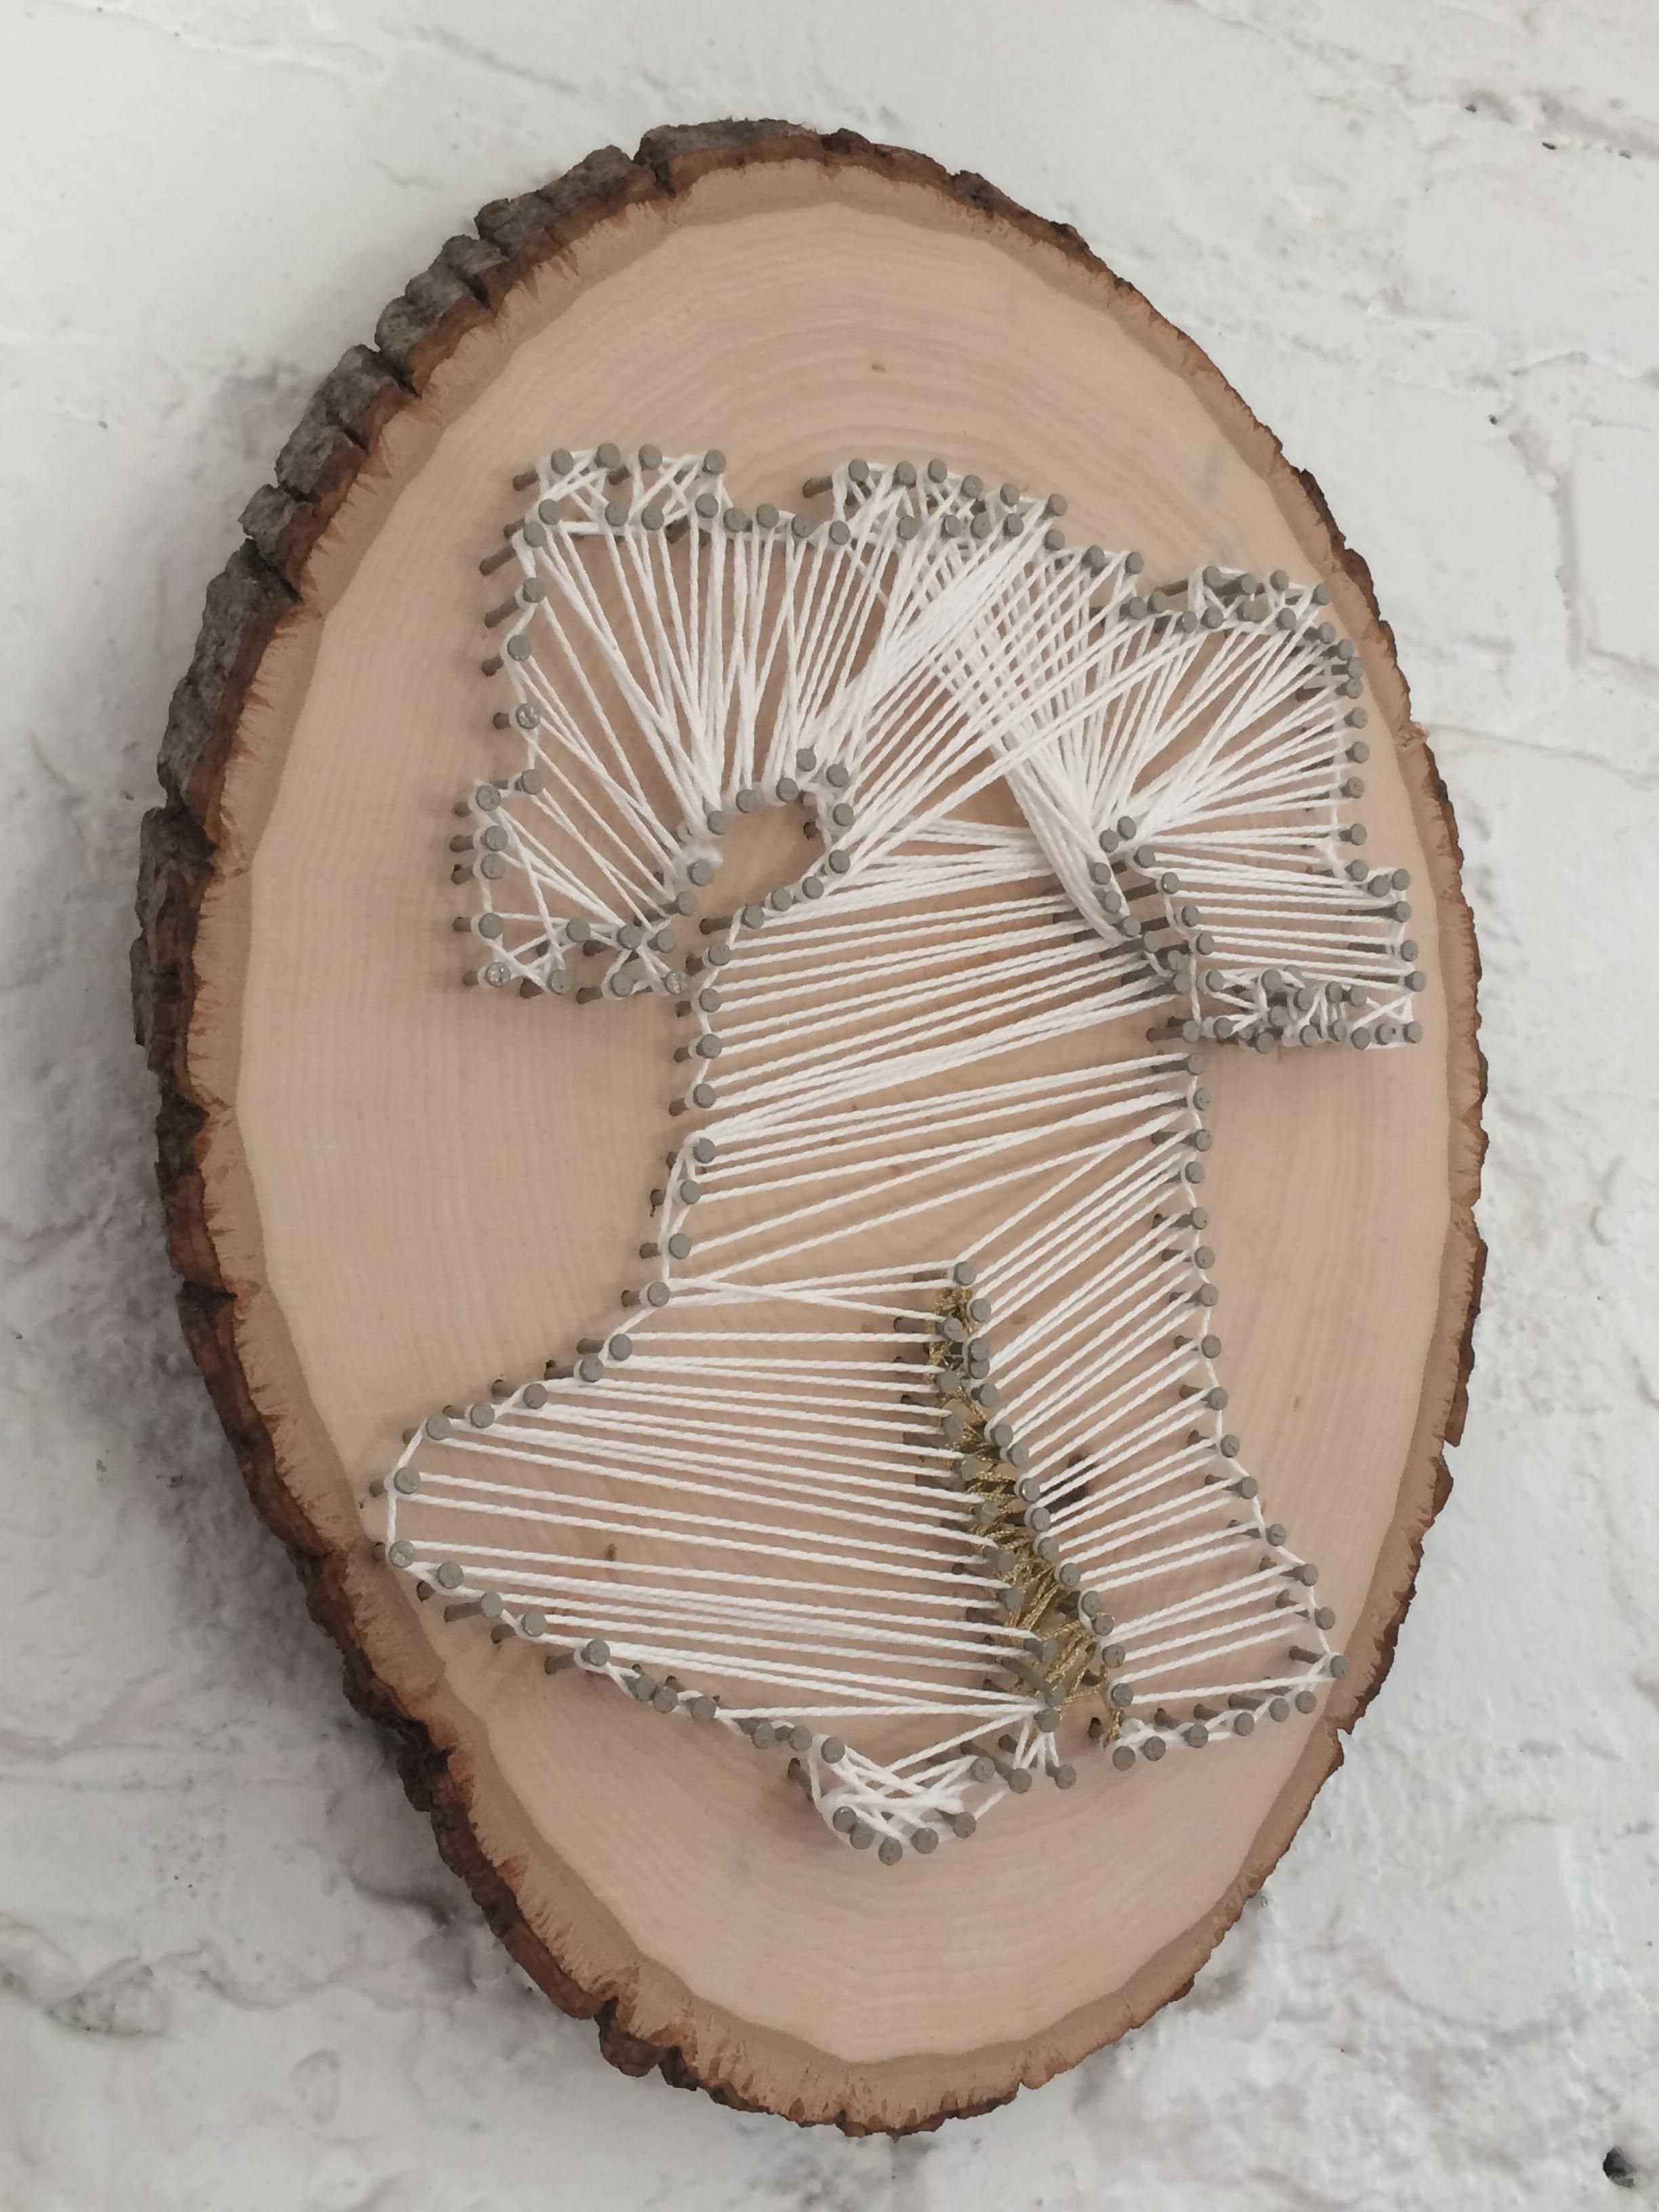 How to Nail and String Art, Liberty Bell, Philadelphia